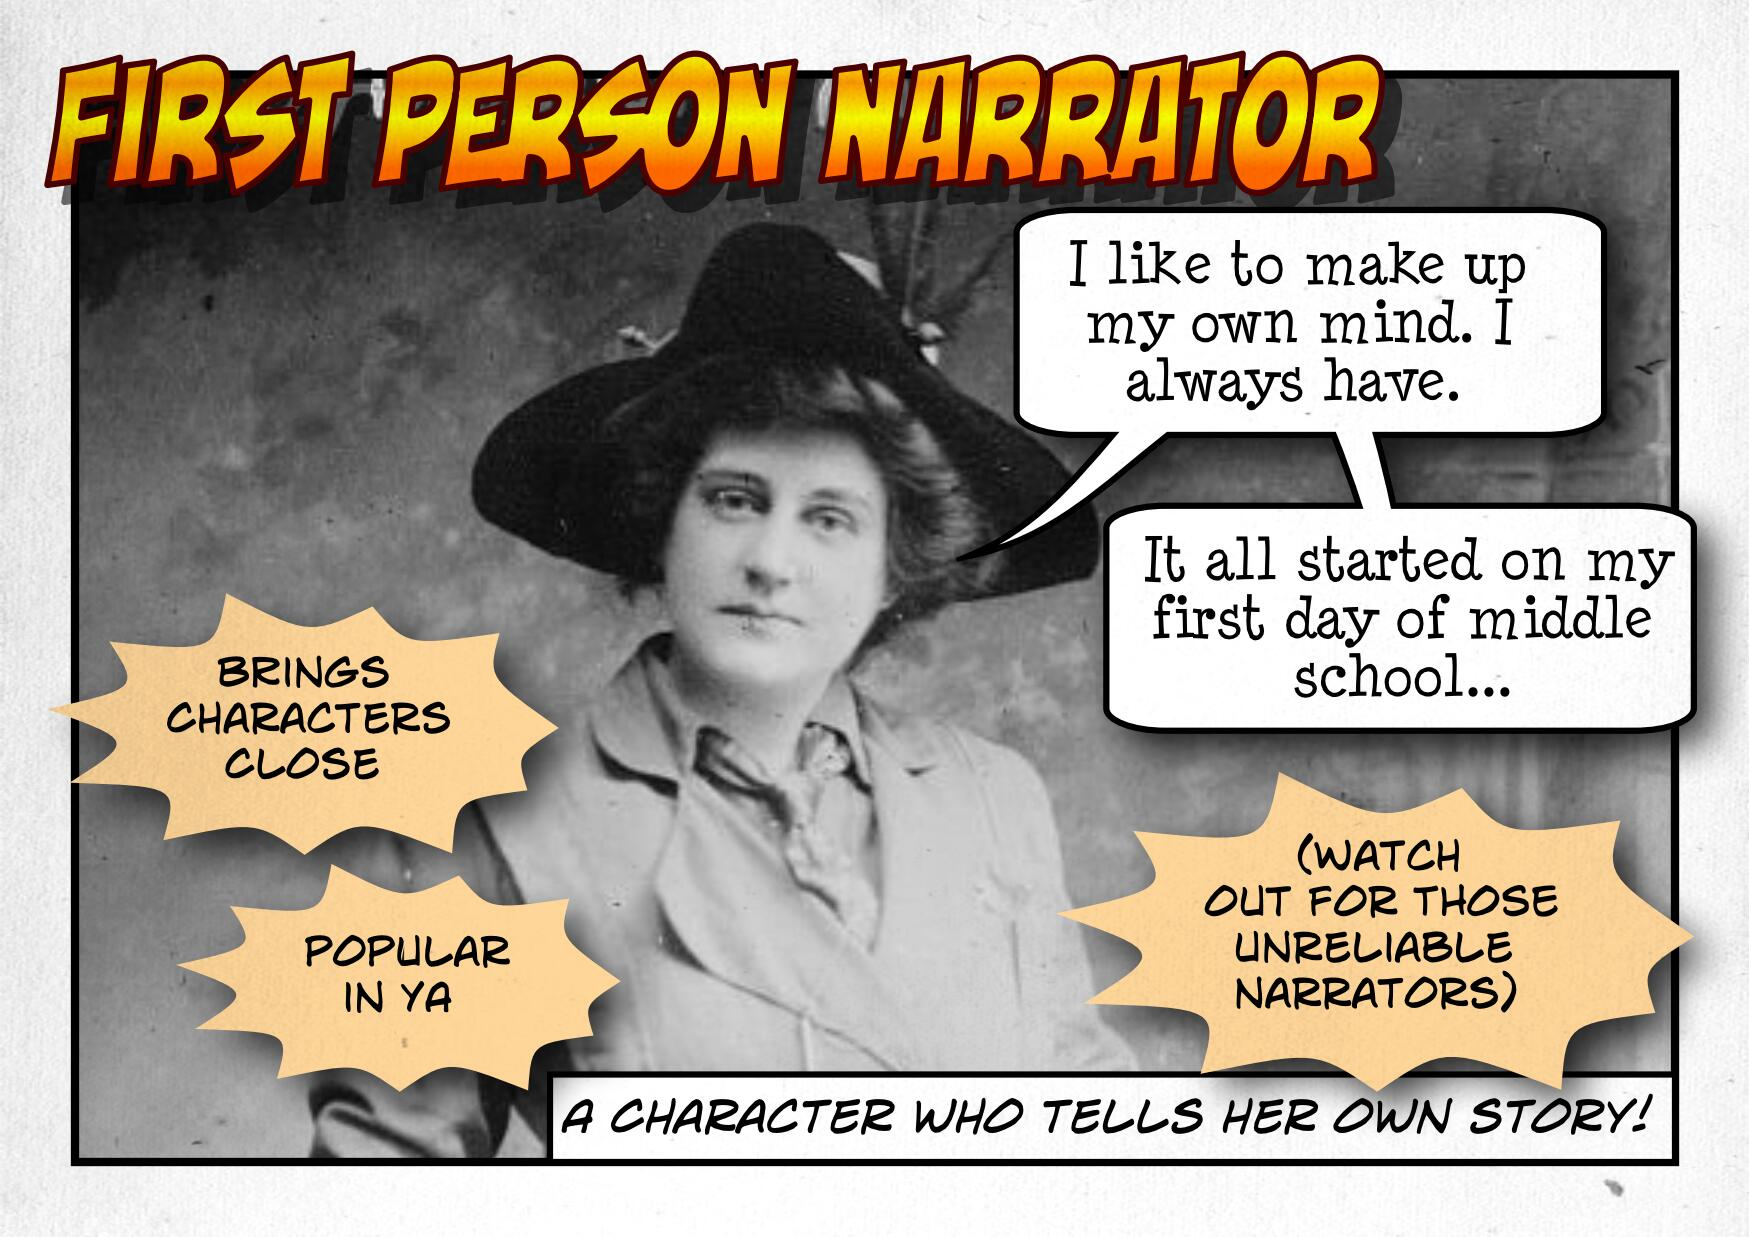 First Person Narrator